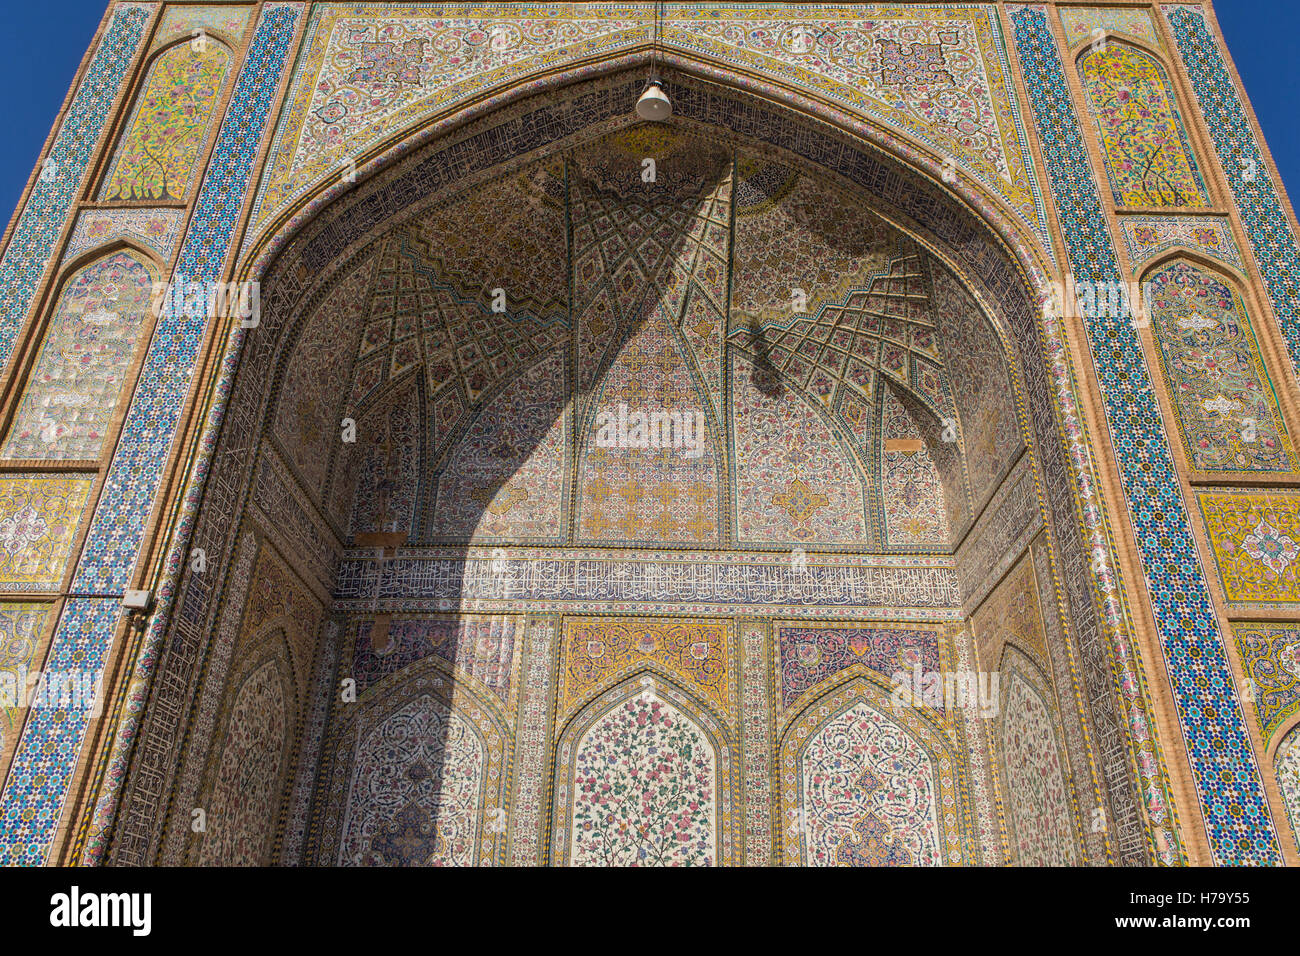 pattern on arch at mosque in iran - Stock Image